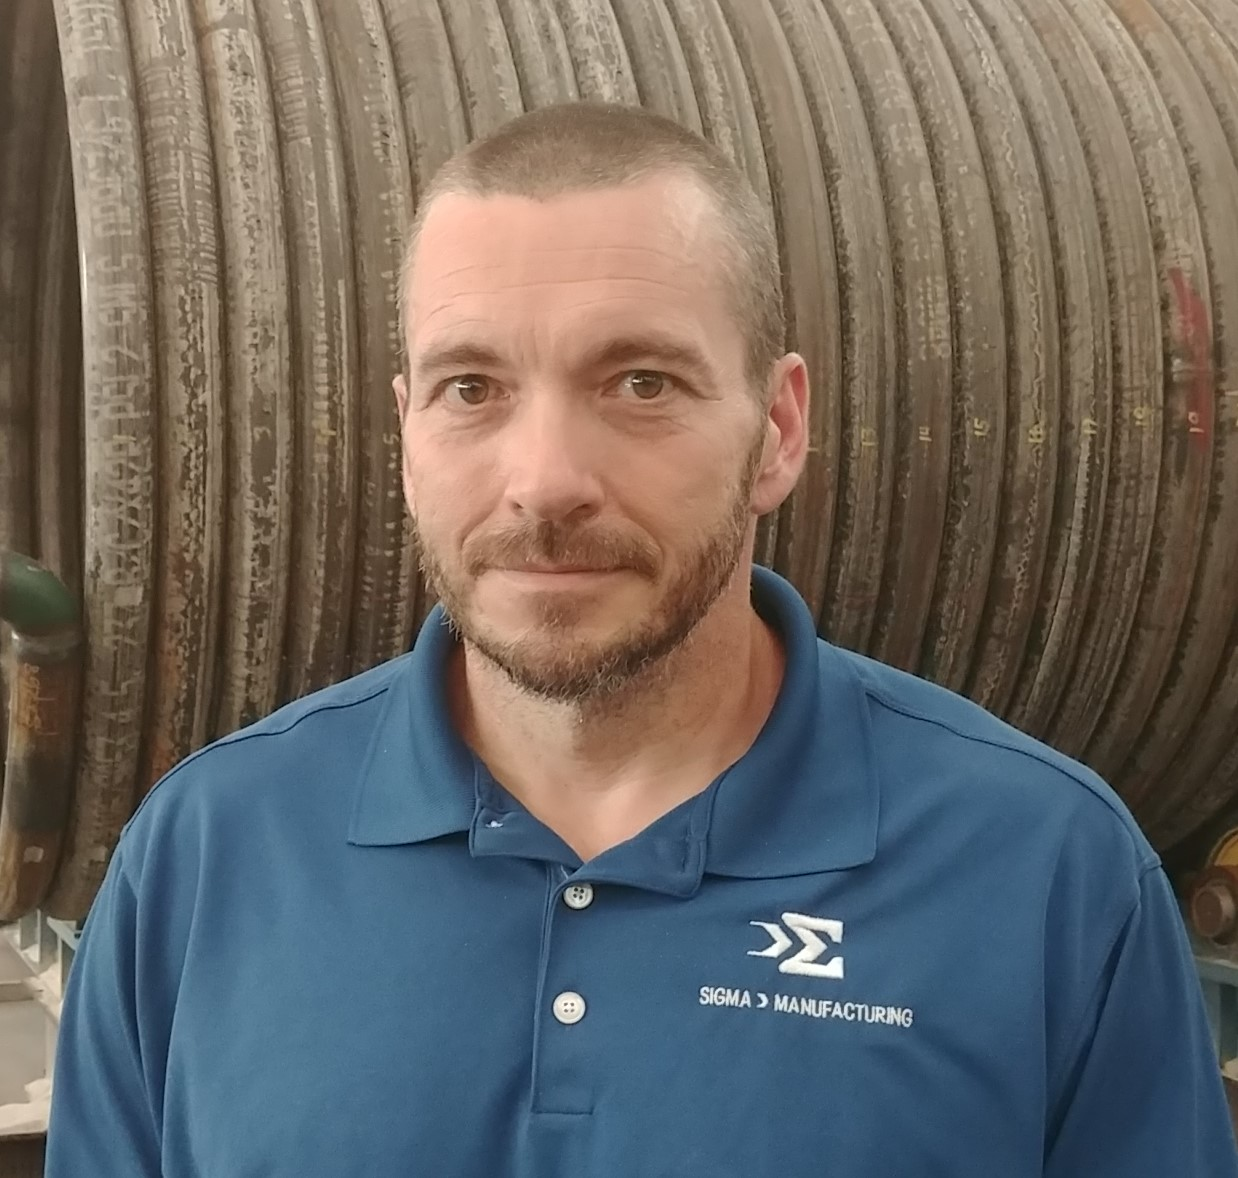 Kevin Hoseclaw, Director, Project Management.  Kevin has over 20 years experience in manufacturing and metal fabrication with a work history that includes construction, industrial equipment, boilers, pressure vessels and process piping. Kevin has been with Sigma Manufacturing LLC since 2011.